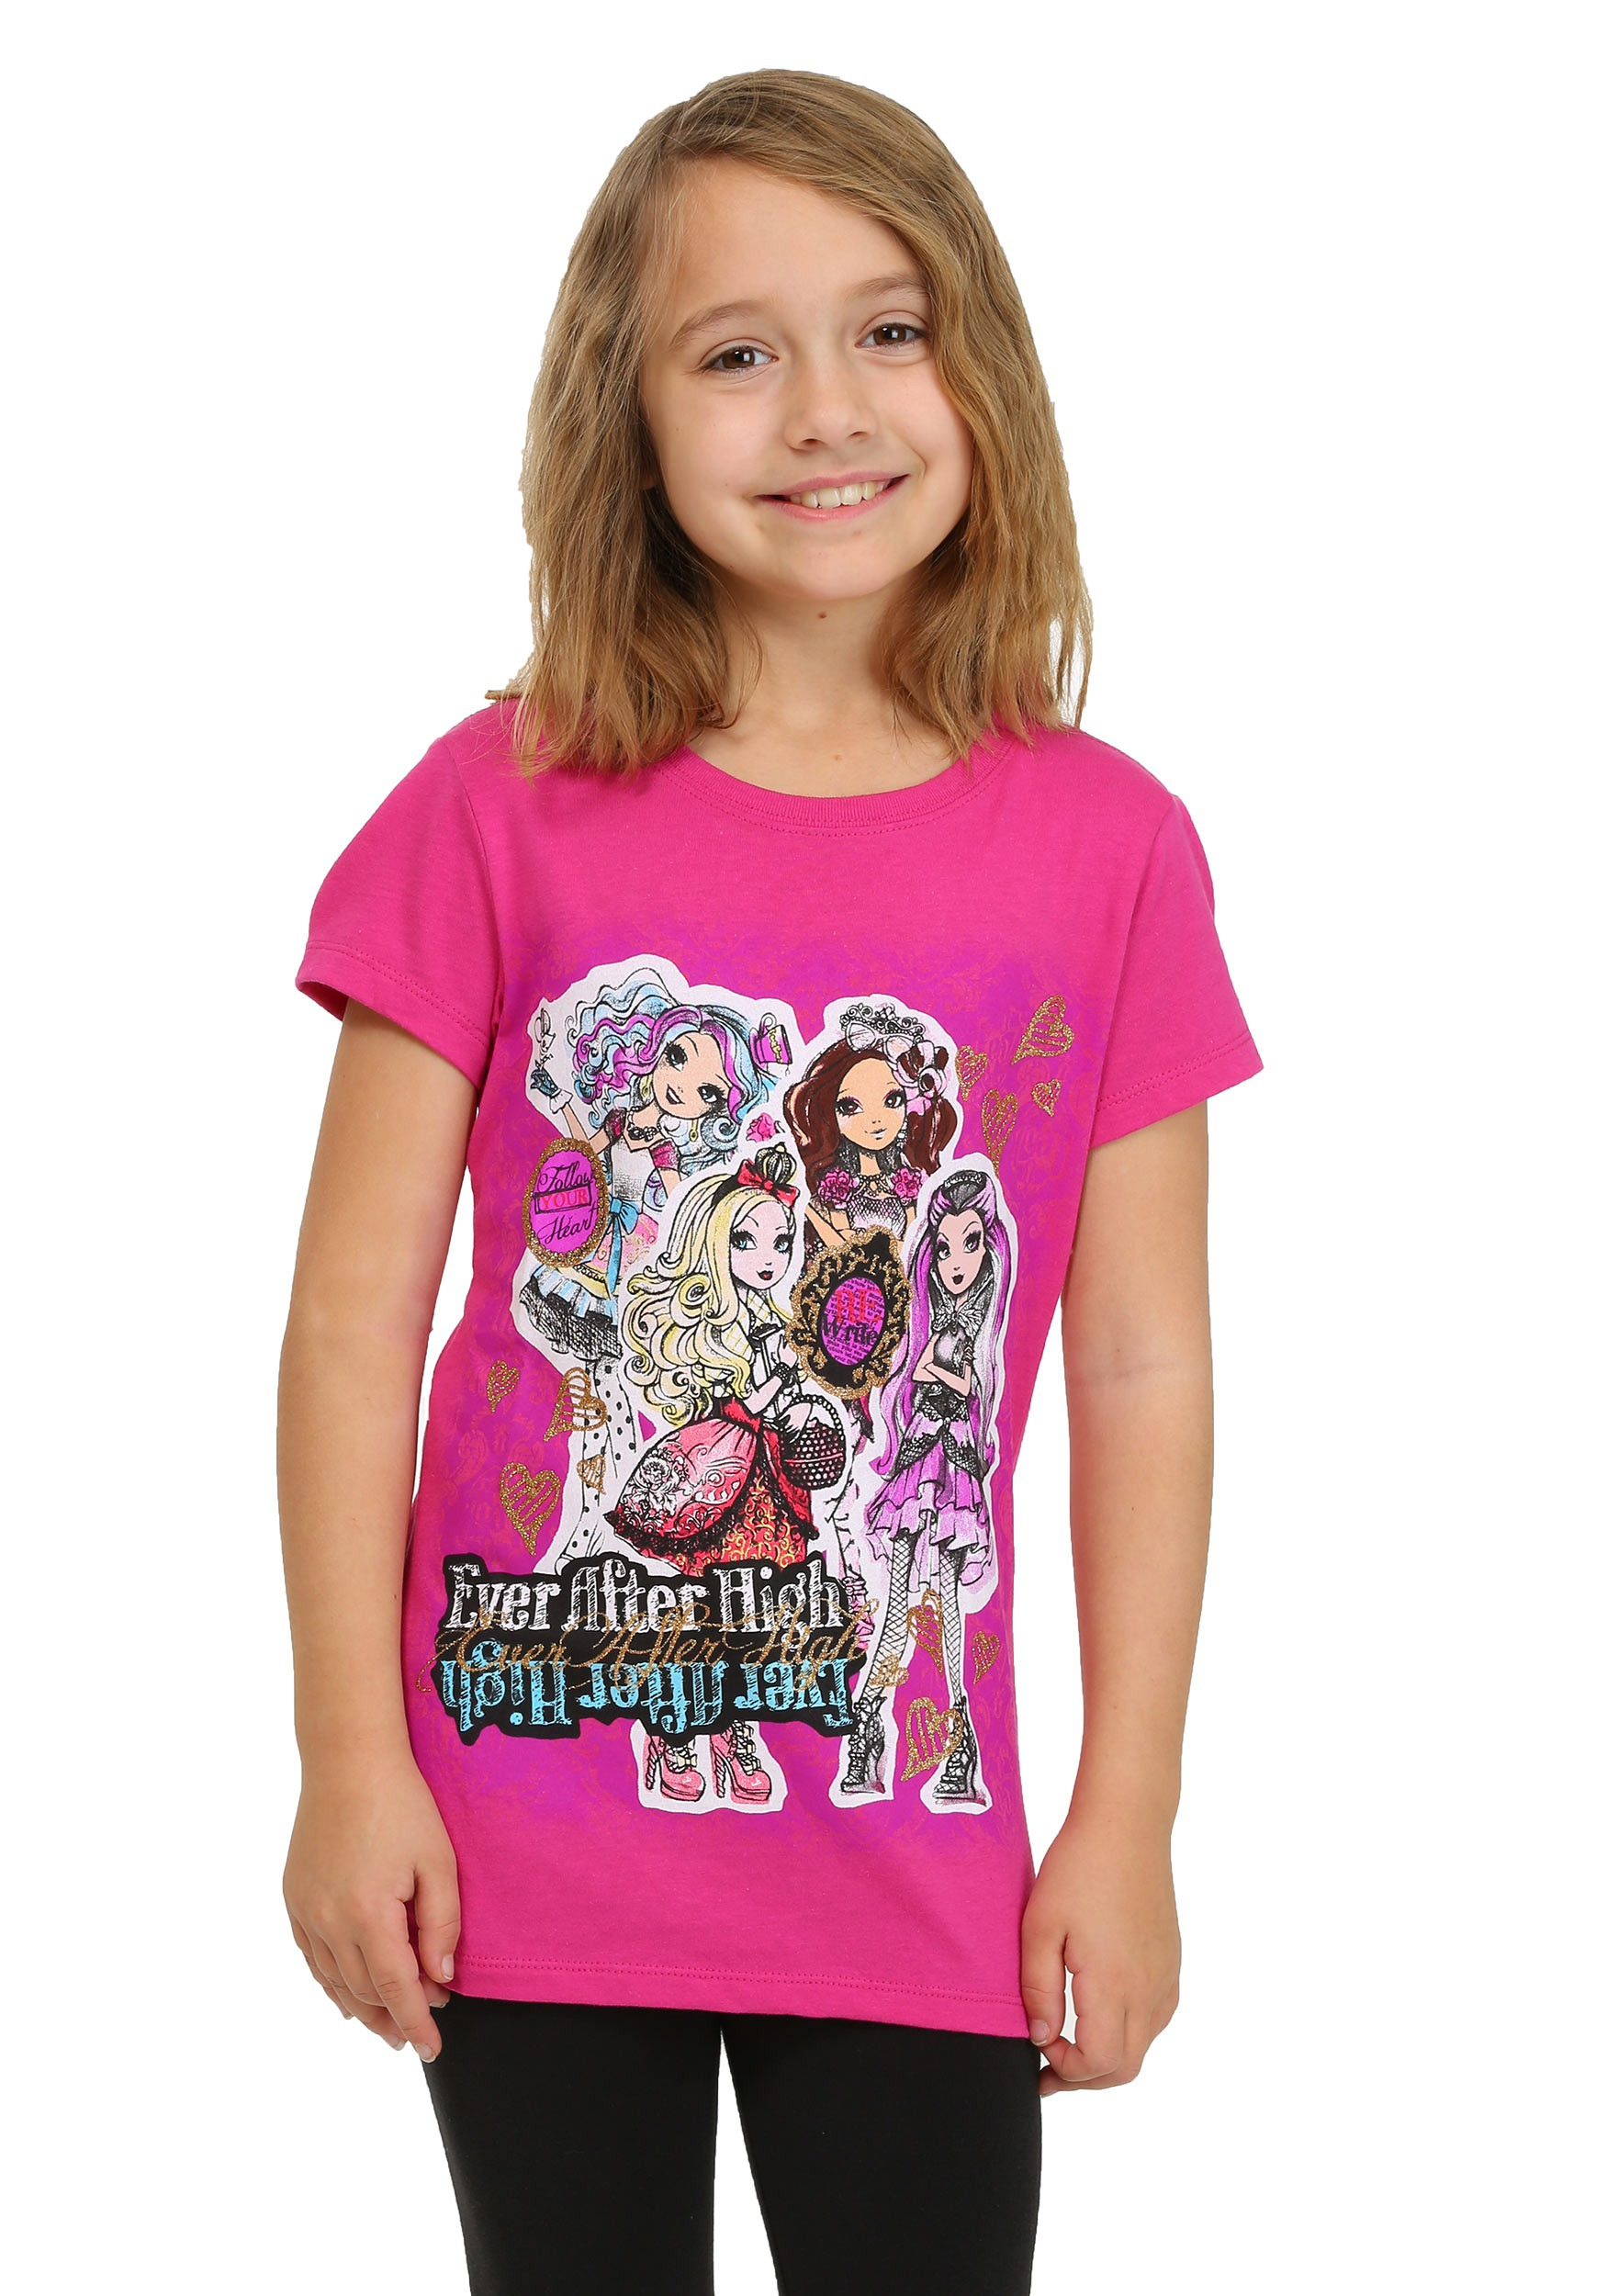 Ever After High Group Shot Girls T-Shirt